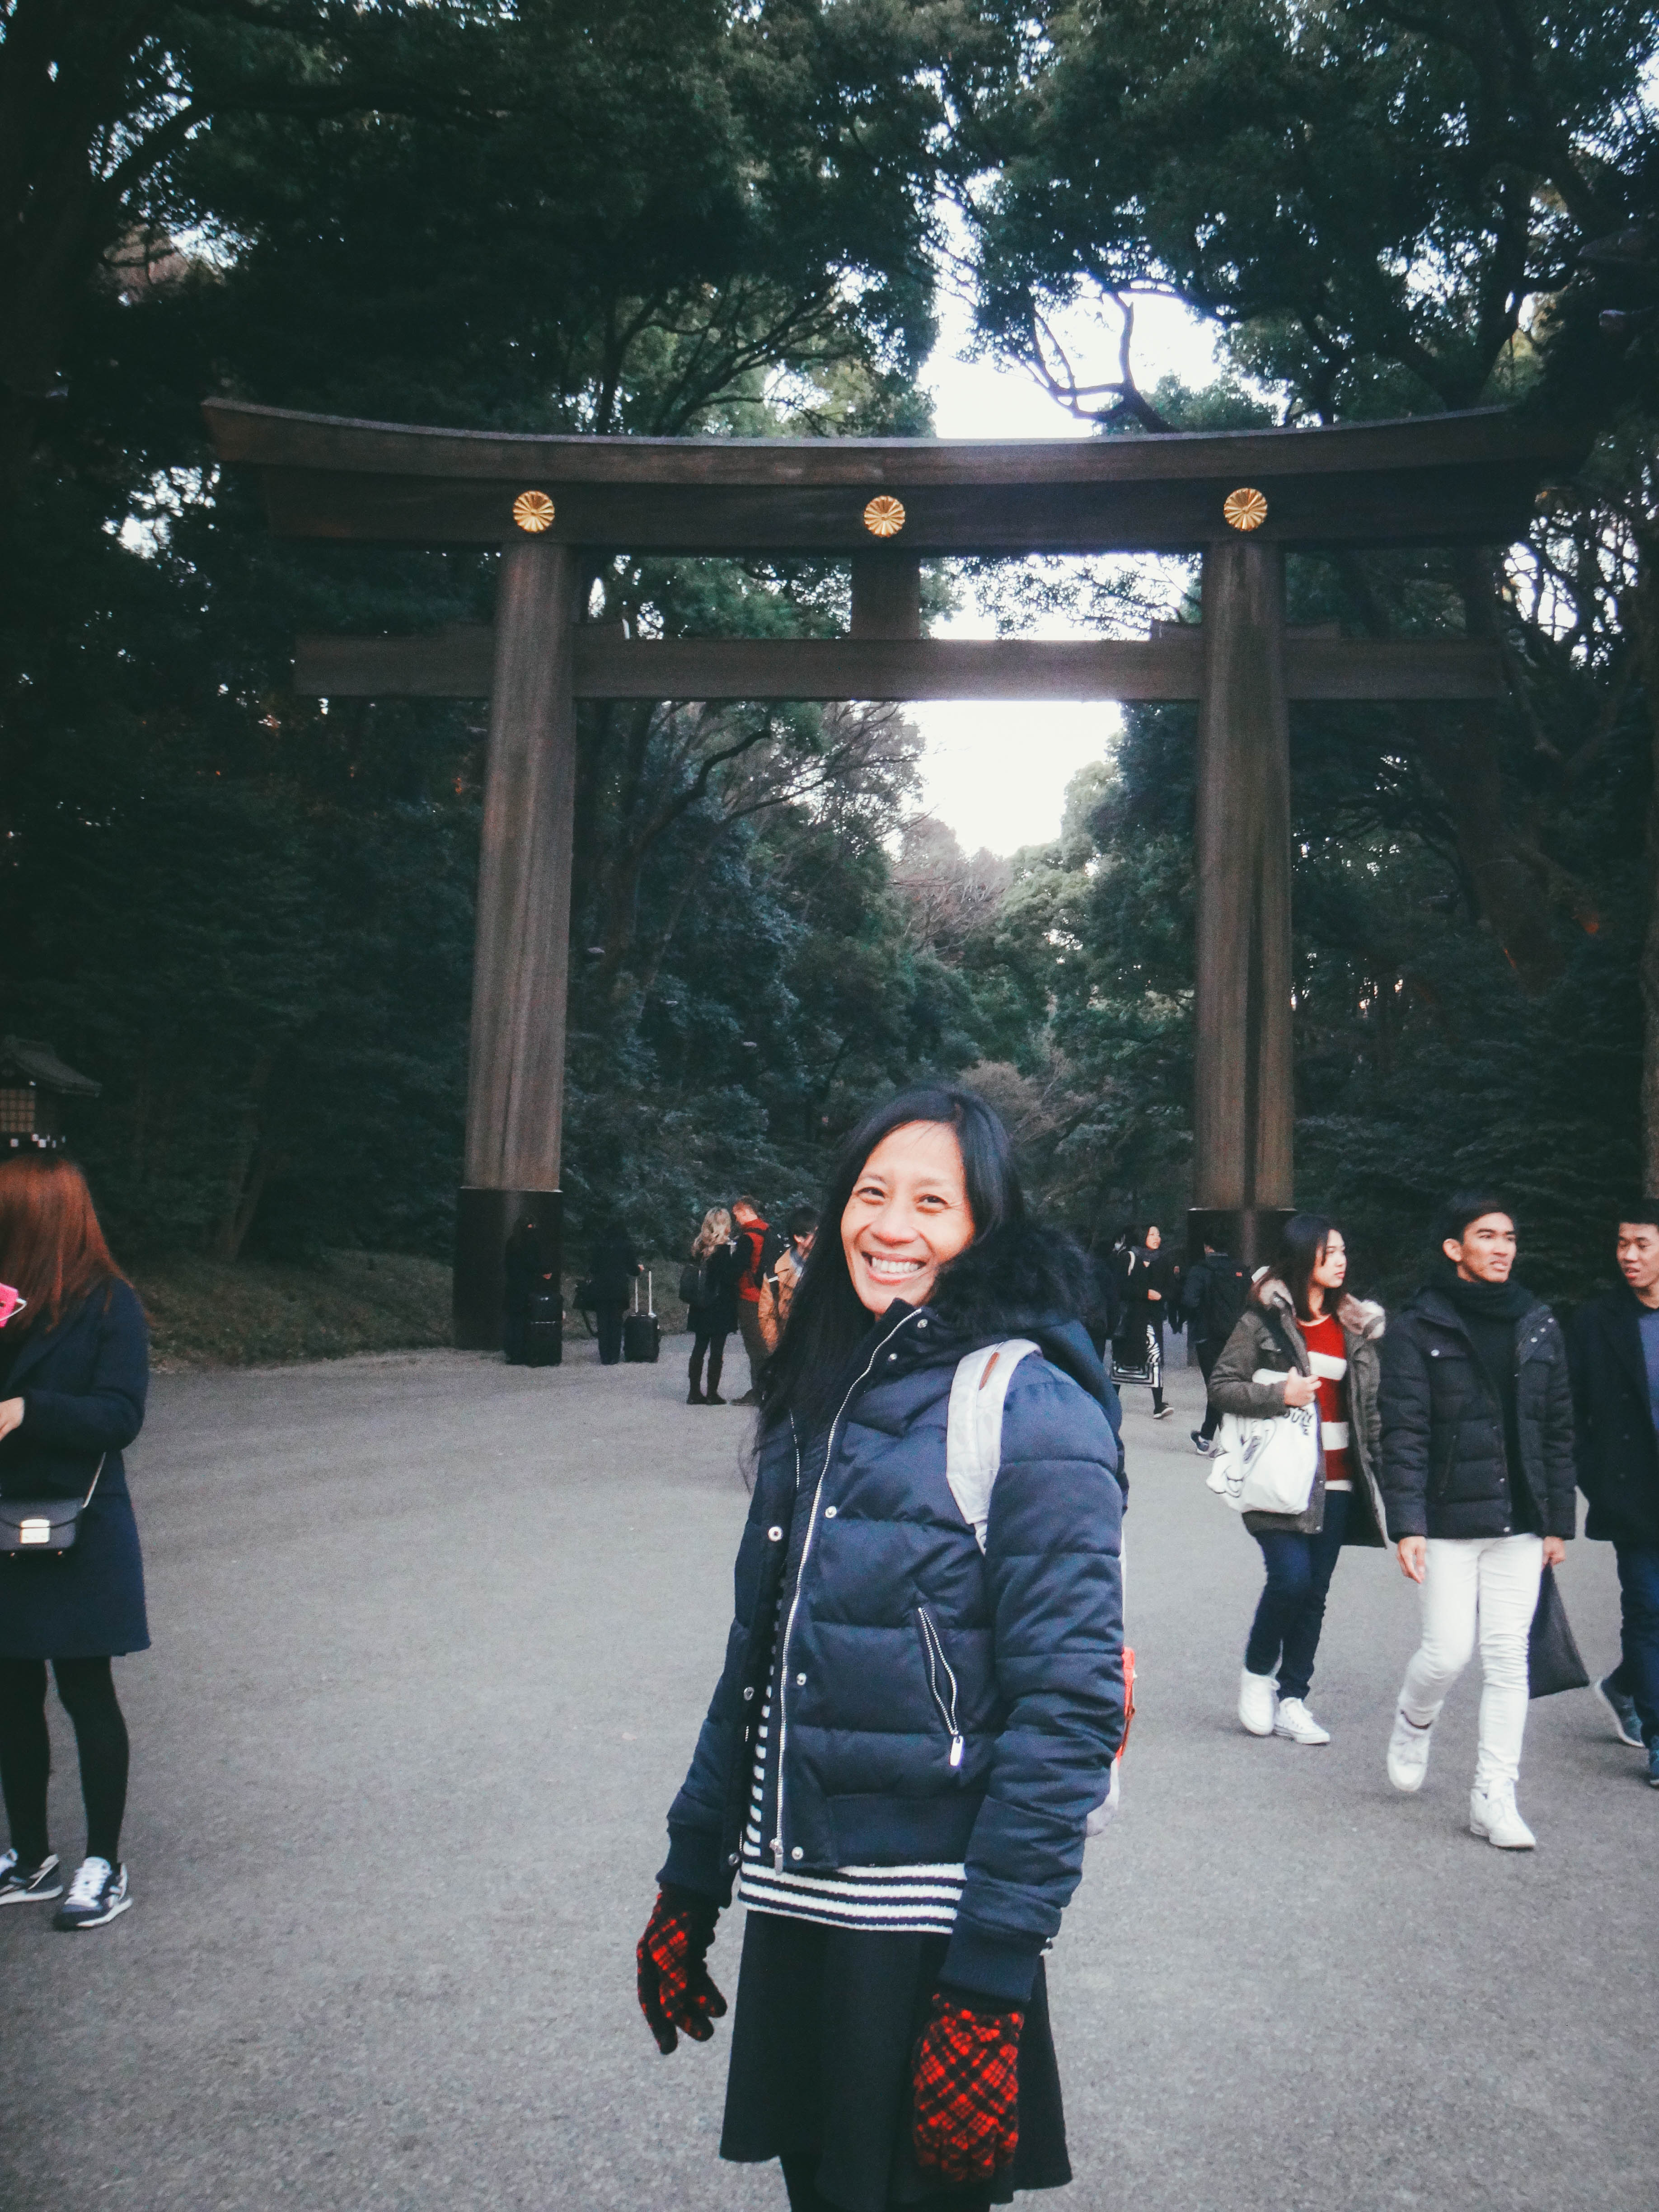 MEIJI SHRINE. The author's mother poses in front of the Meiji Shrine's torii gate, a fixture found in Shinto shrines. Photo provided by Irene Maligat